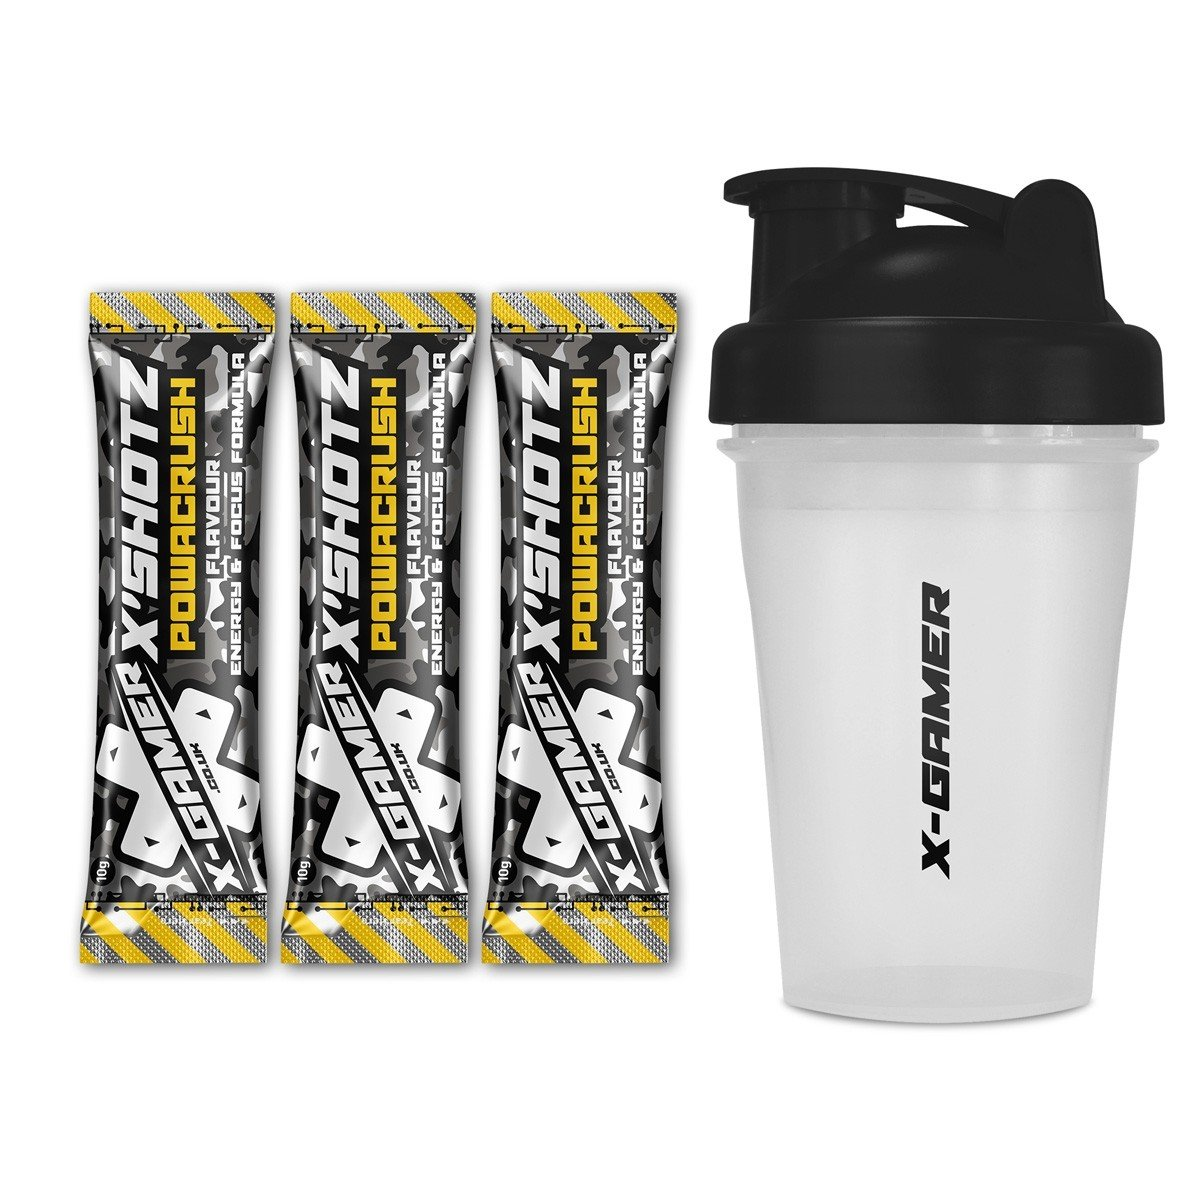 X-Gamer   X-Shotz Powacrush (3 Pack) with X-Shakez Shaker   Powacrush Flavored Focus and Energy-Drink Beverage for Gamers and E-Sports Enthusiasts   27 Multi-Vitamin Complex   Zero Added Sugar